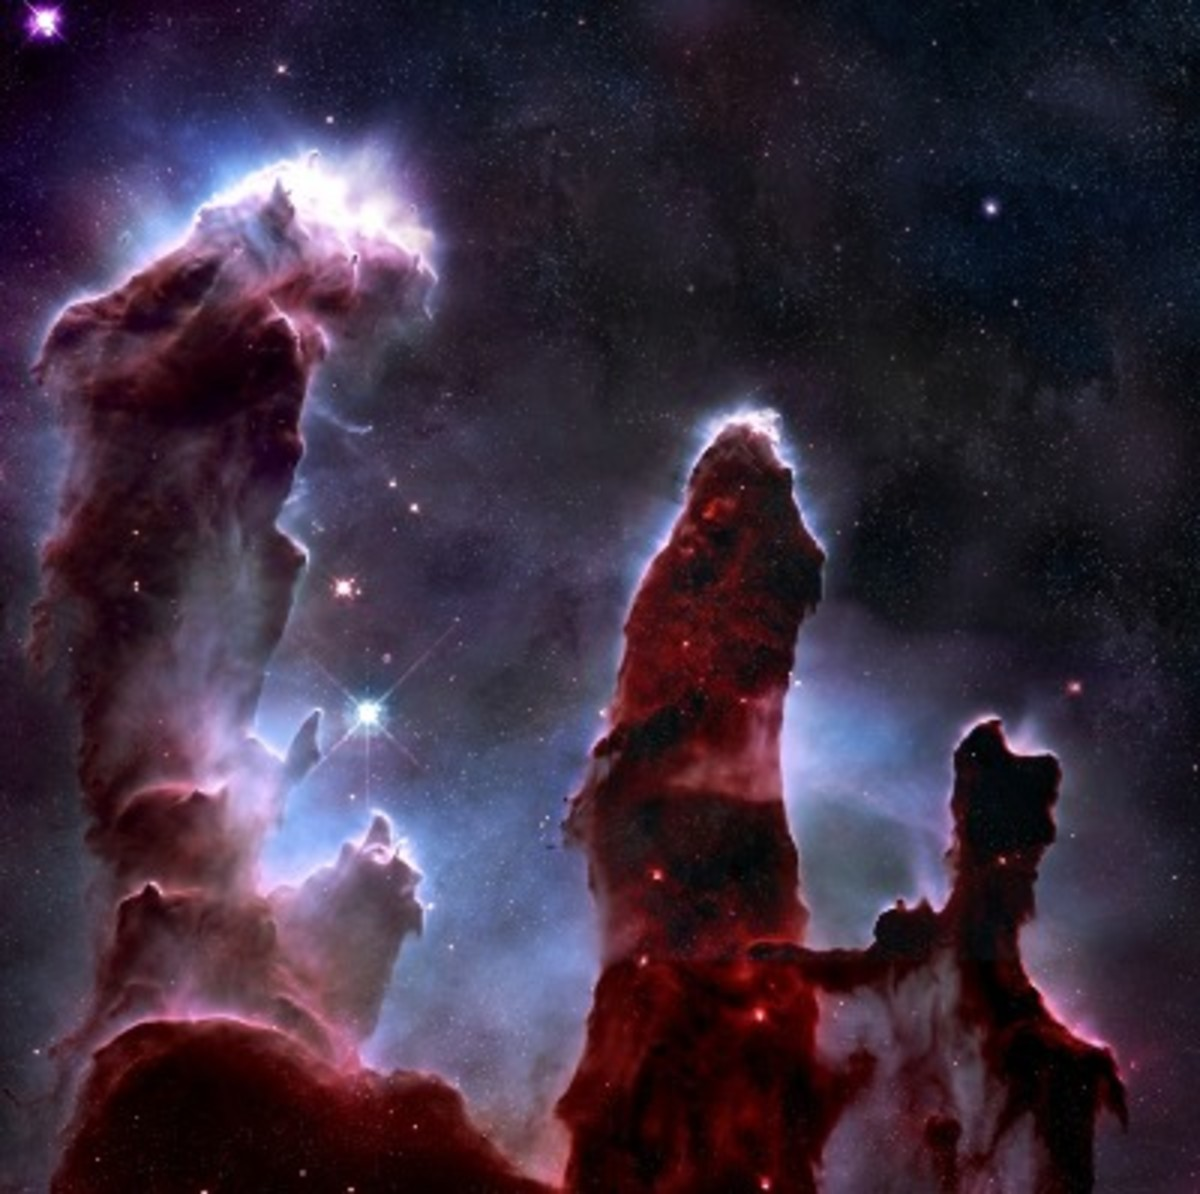 Eagle Nebula, NASA, Hubble, Pillars of creation